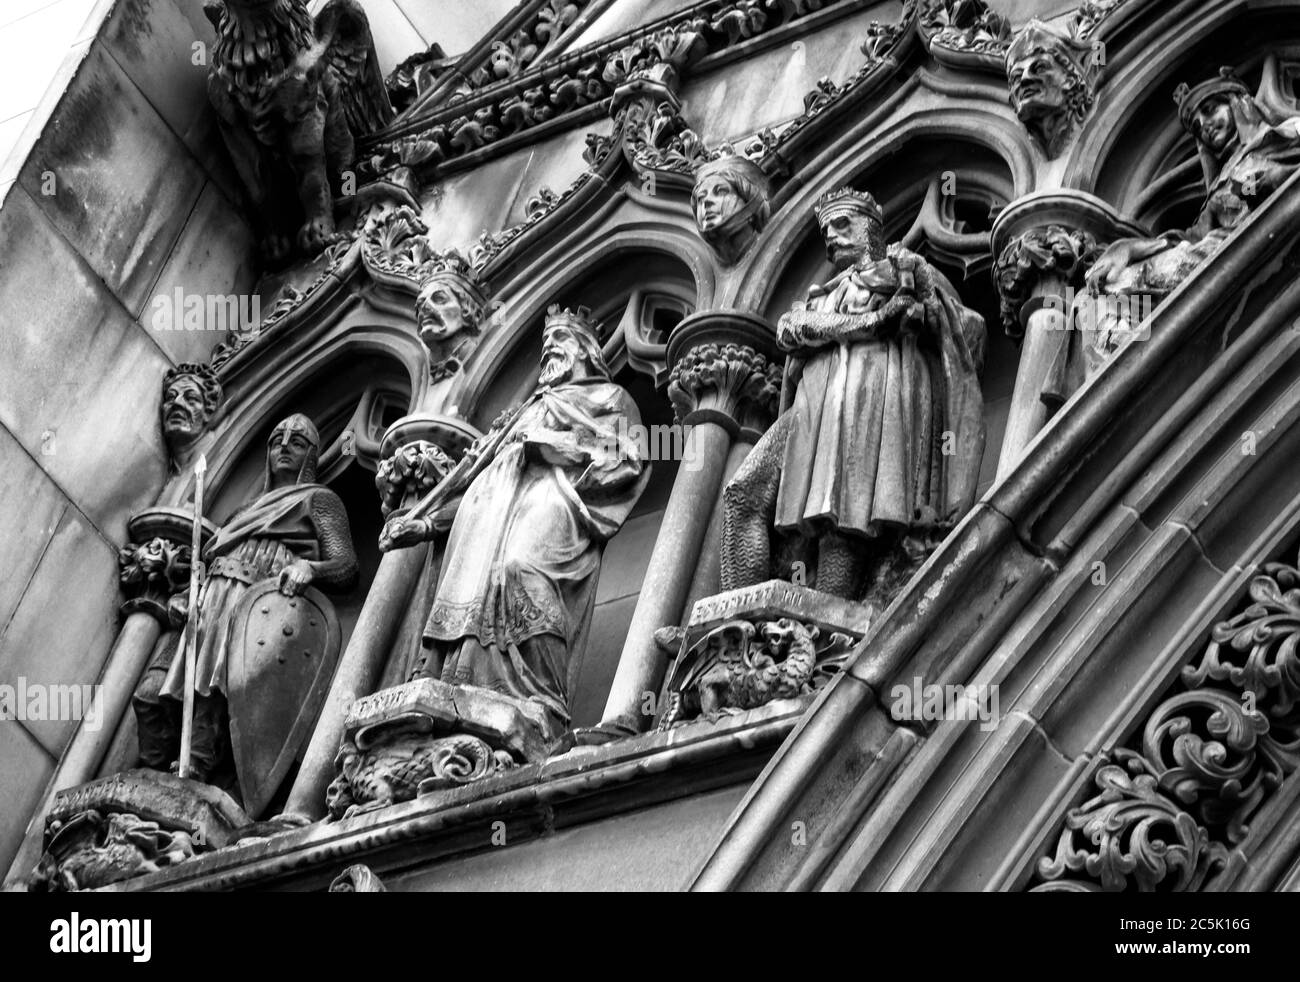 The stone carved detail of kings, in monochrome, on the exterior of Edinburgh's St Gilles Cathedral Stock Photo